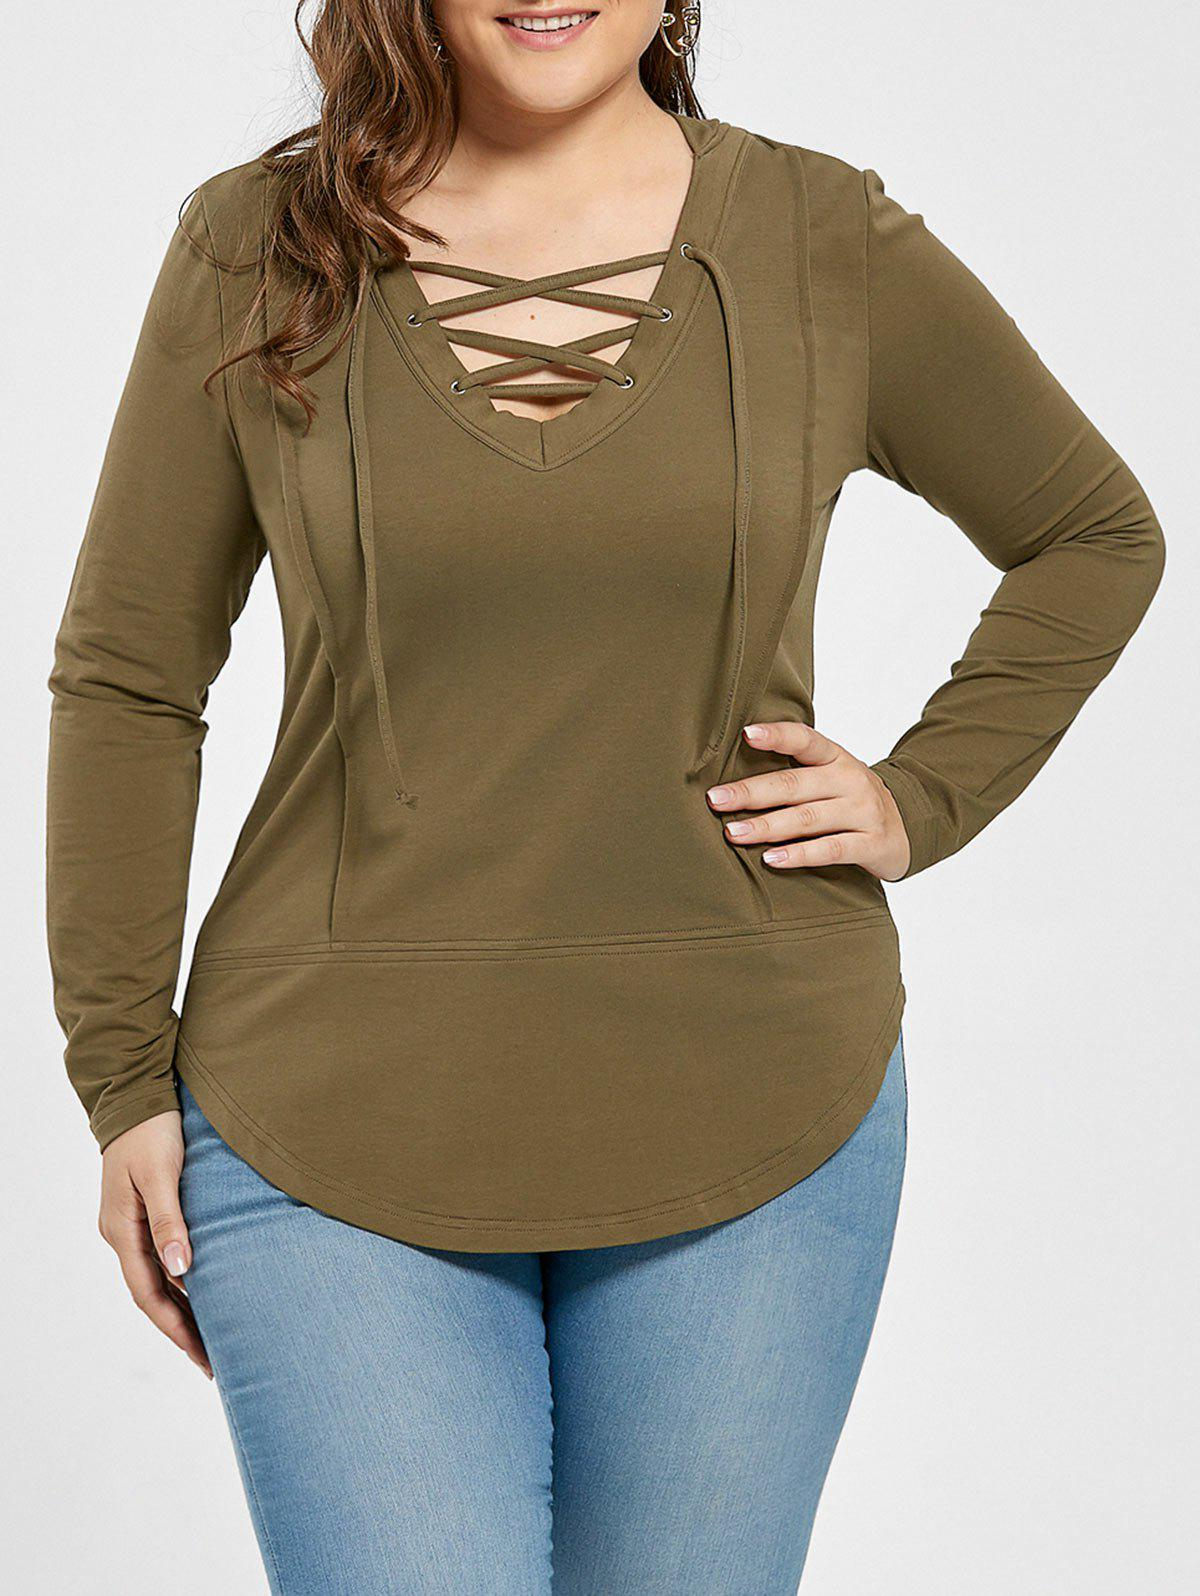 Plus Size Asymmetrical Lace Up HoodieWOMEN<br><br>Size: 3XL; Color: GREEN GREY; Material: Cotton,Polyester; Shirt Length: Regular; Sleeve Length: Full; Style: Fashion; Pattern Style: Solid; Embellishment: Criss-Cross; Season: Fall; Weight: 0.3200kg; Package Contents: 1 x Hoodie;